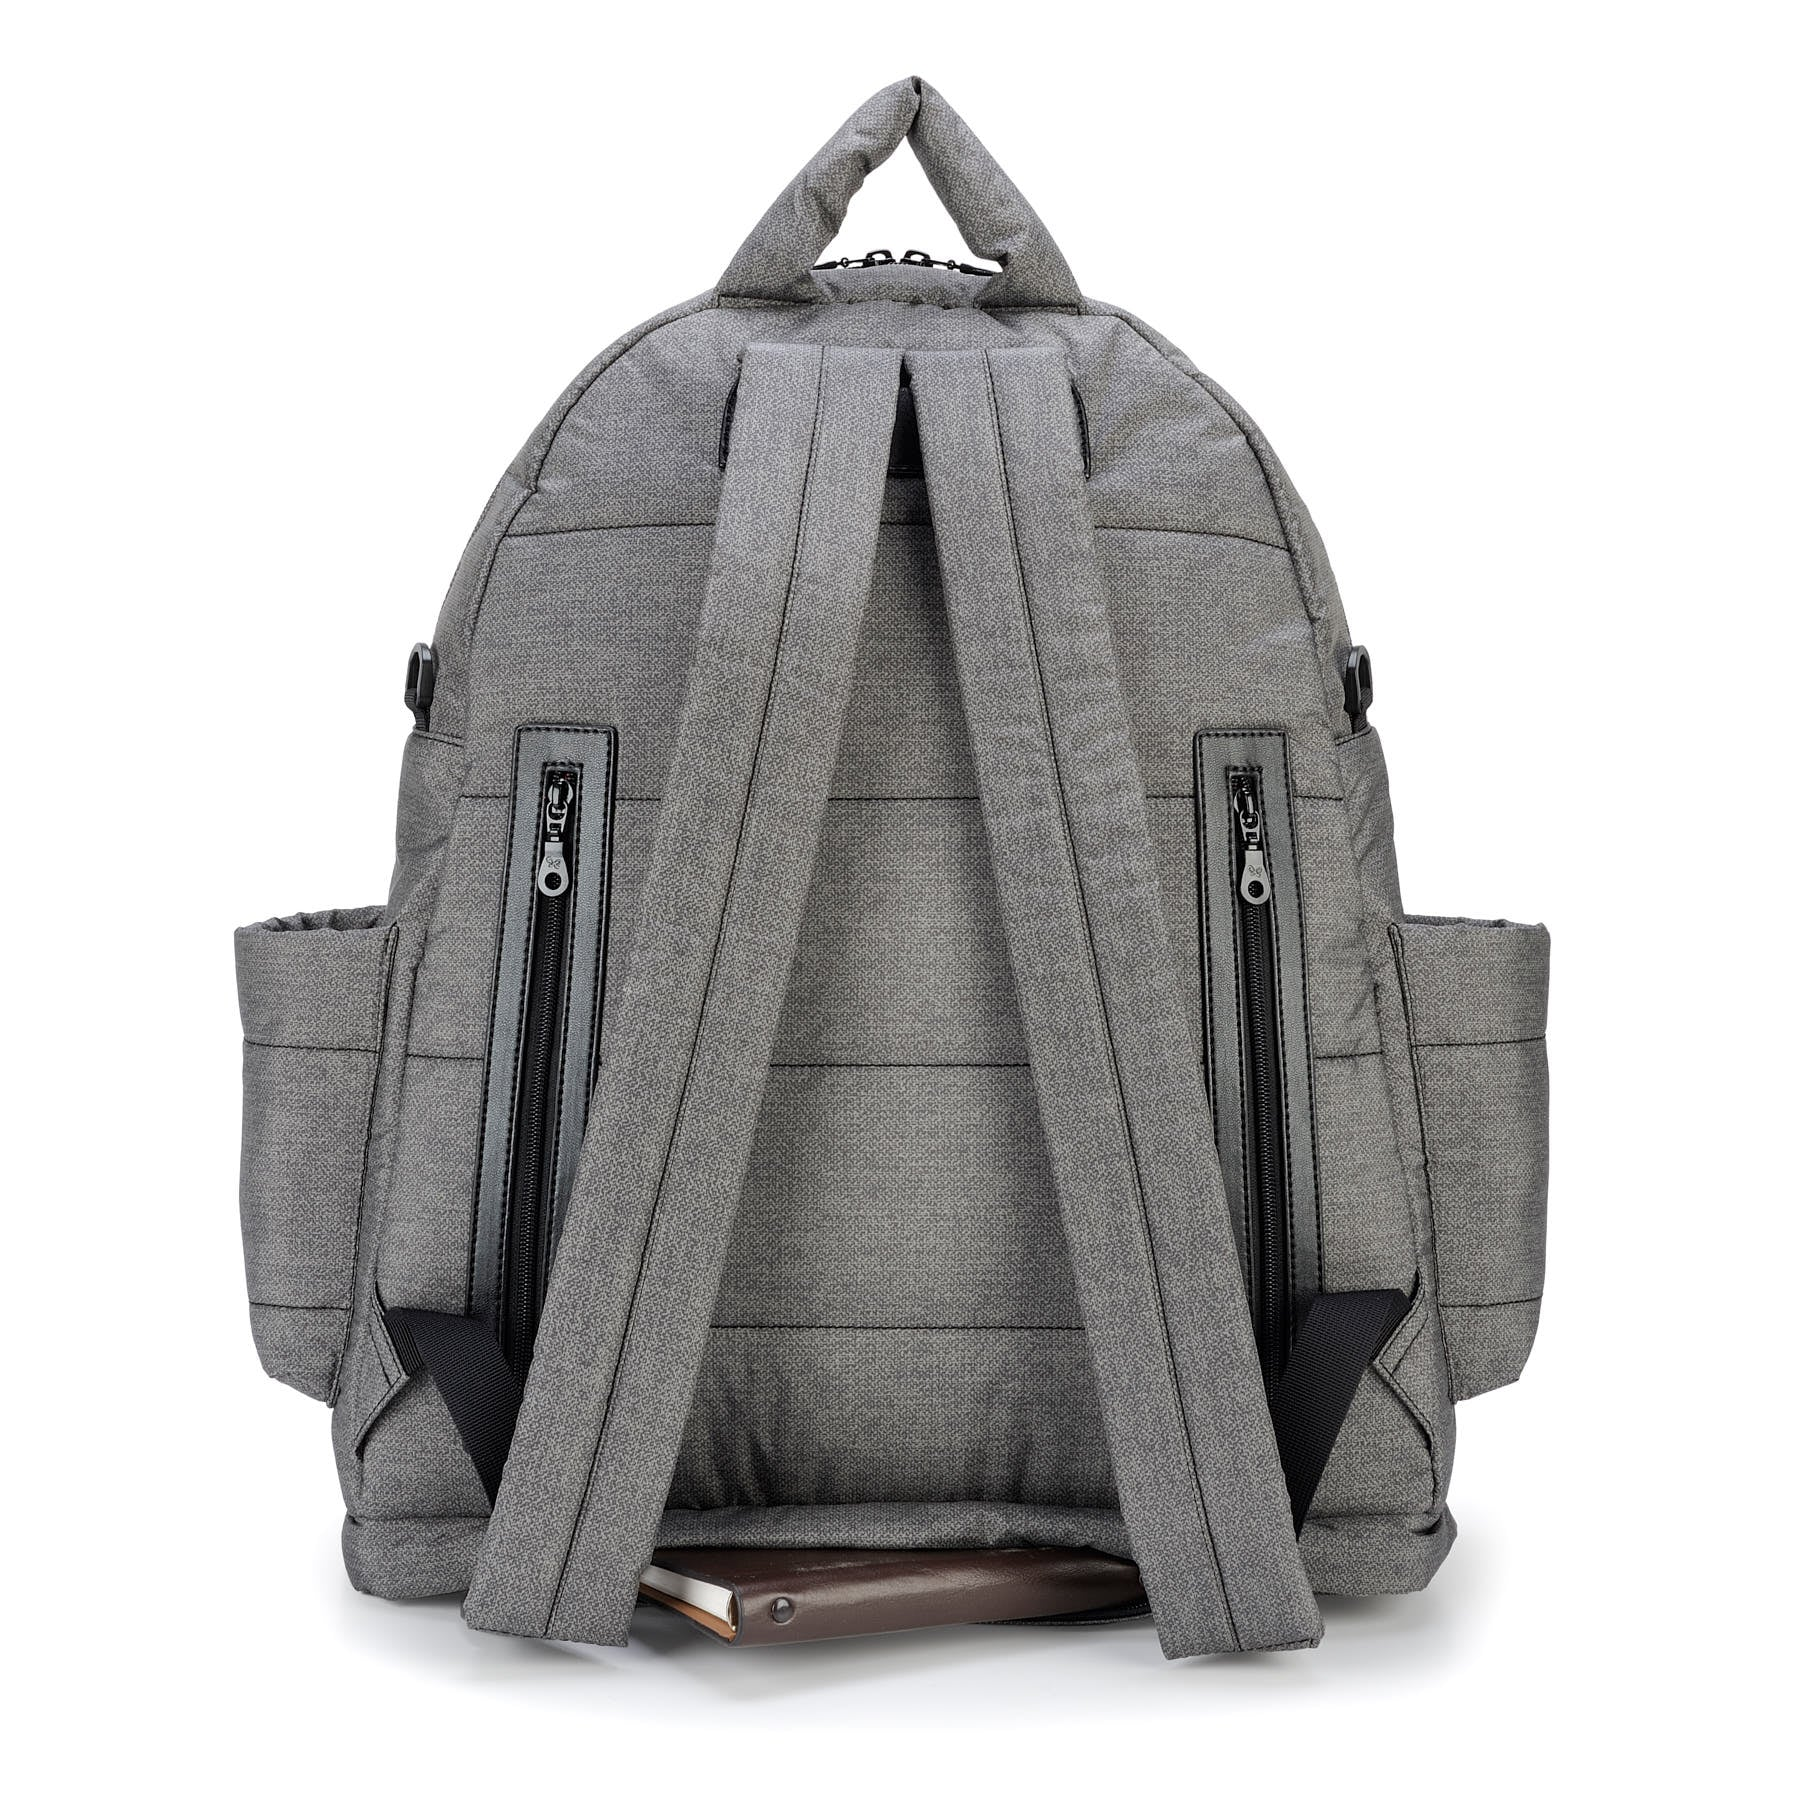 CiPU - Airy XL Jumbo Backpack - England Grey